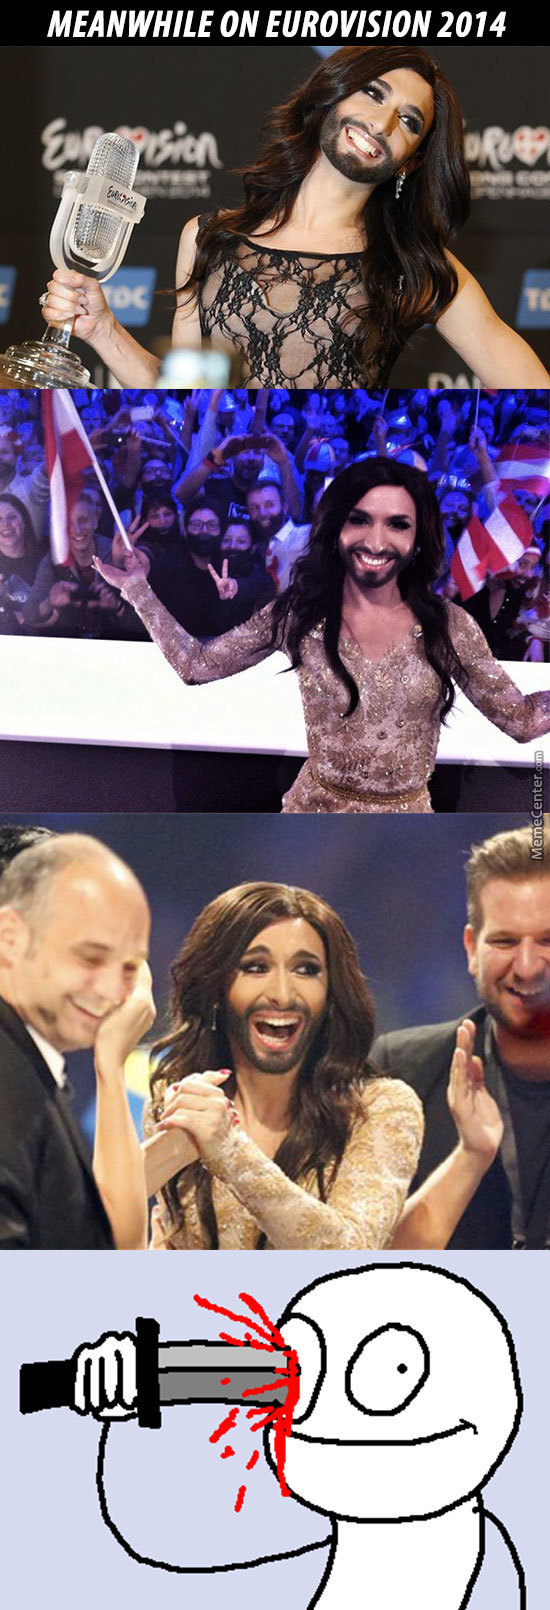 meanwhile on eurovision 2014_o_3199543 eurovision song contest memes best collection of funny eurovision